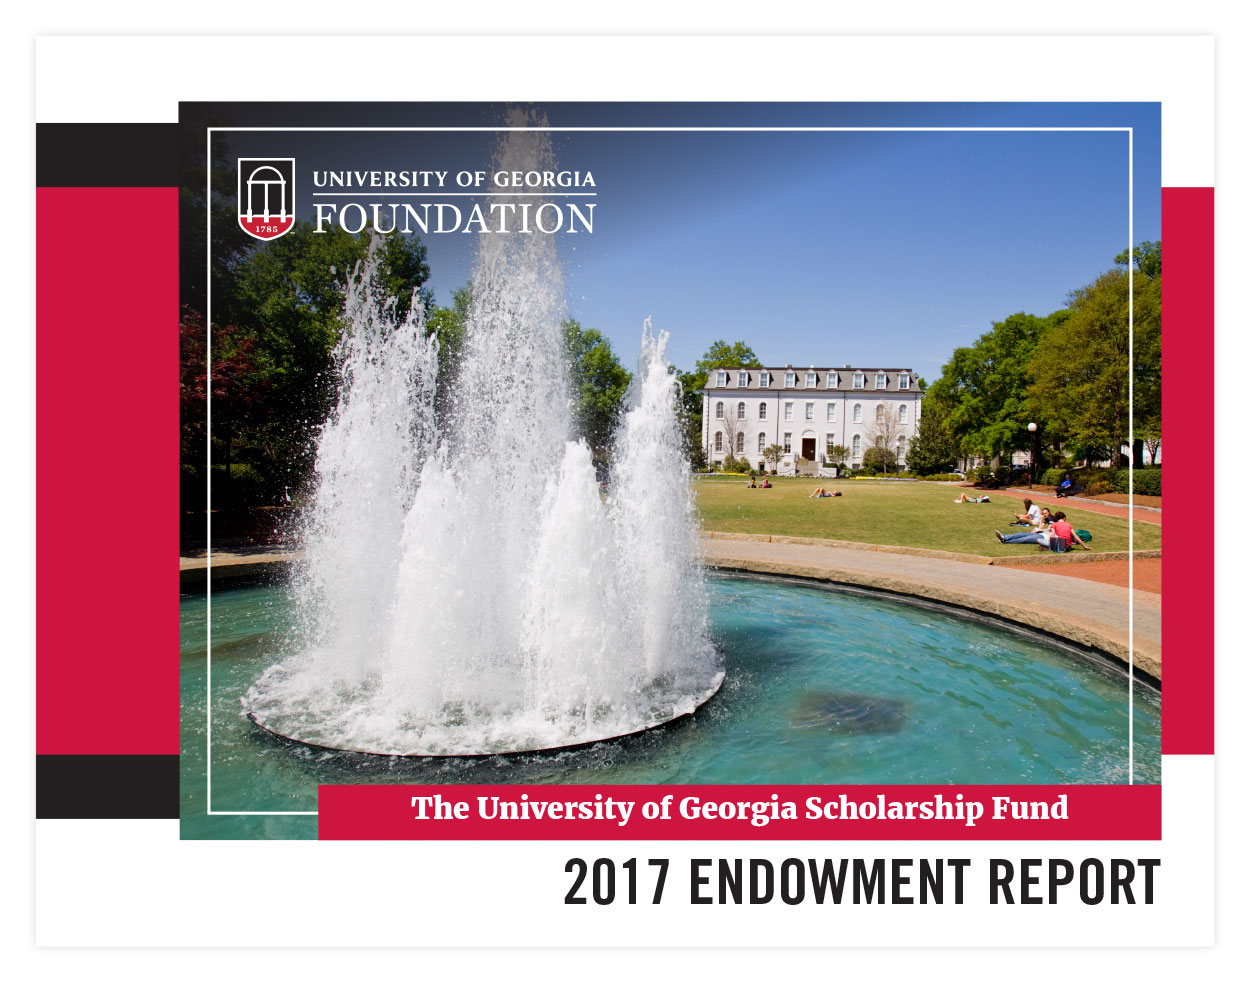 Sample Endowment Brochure Cover